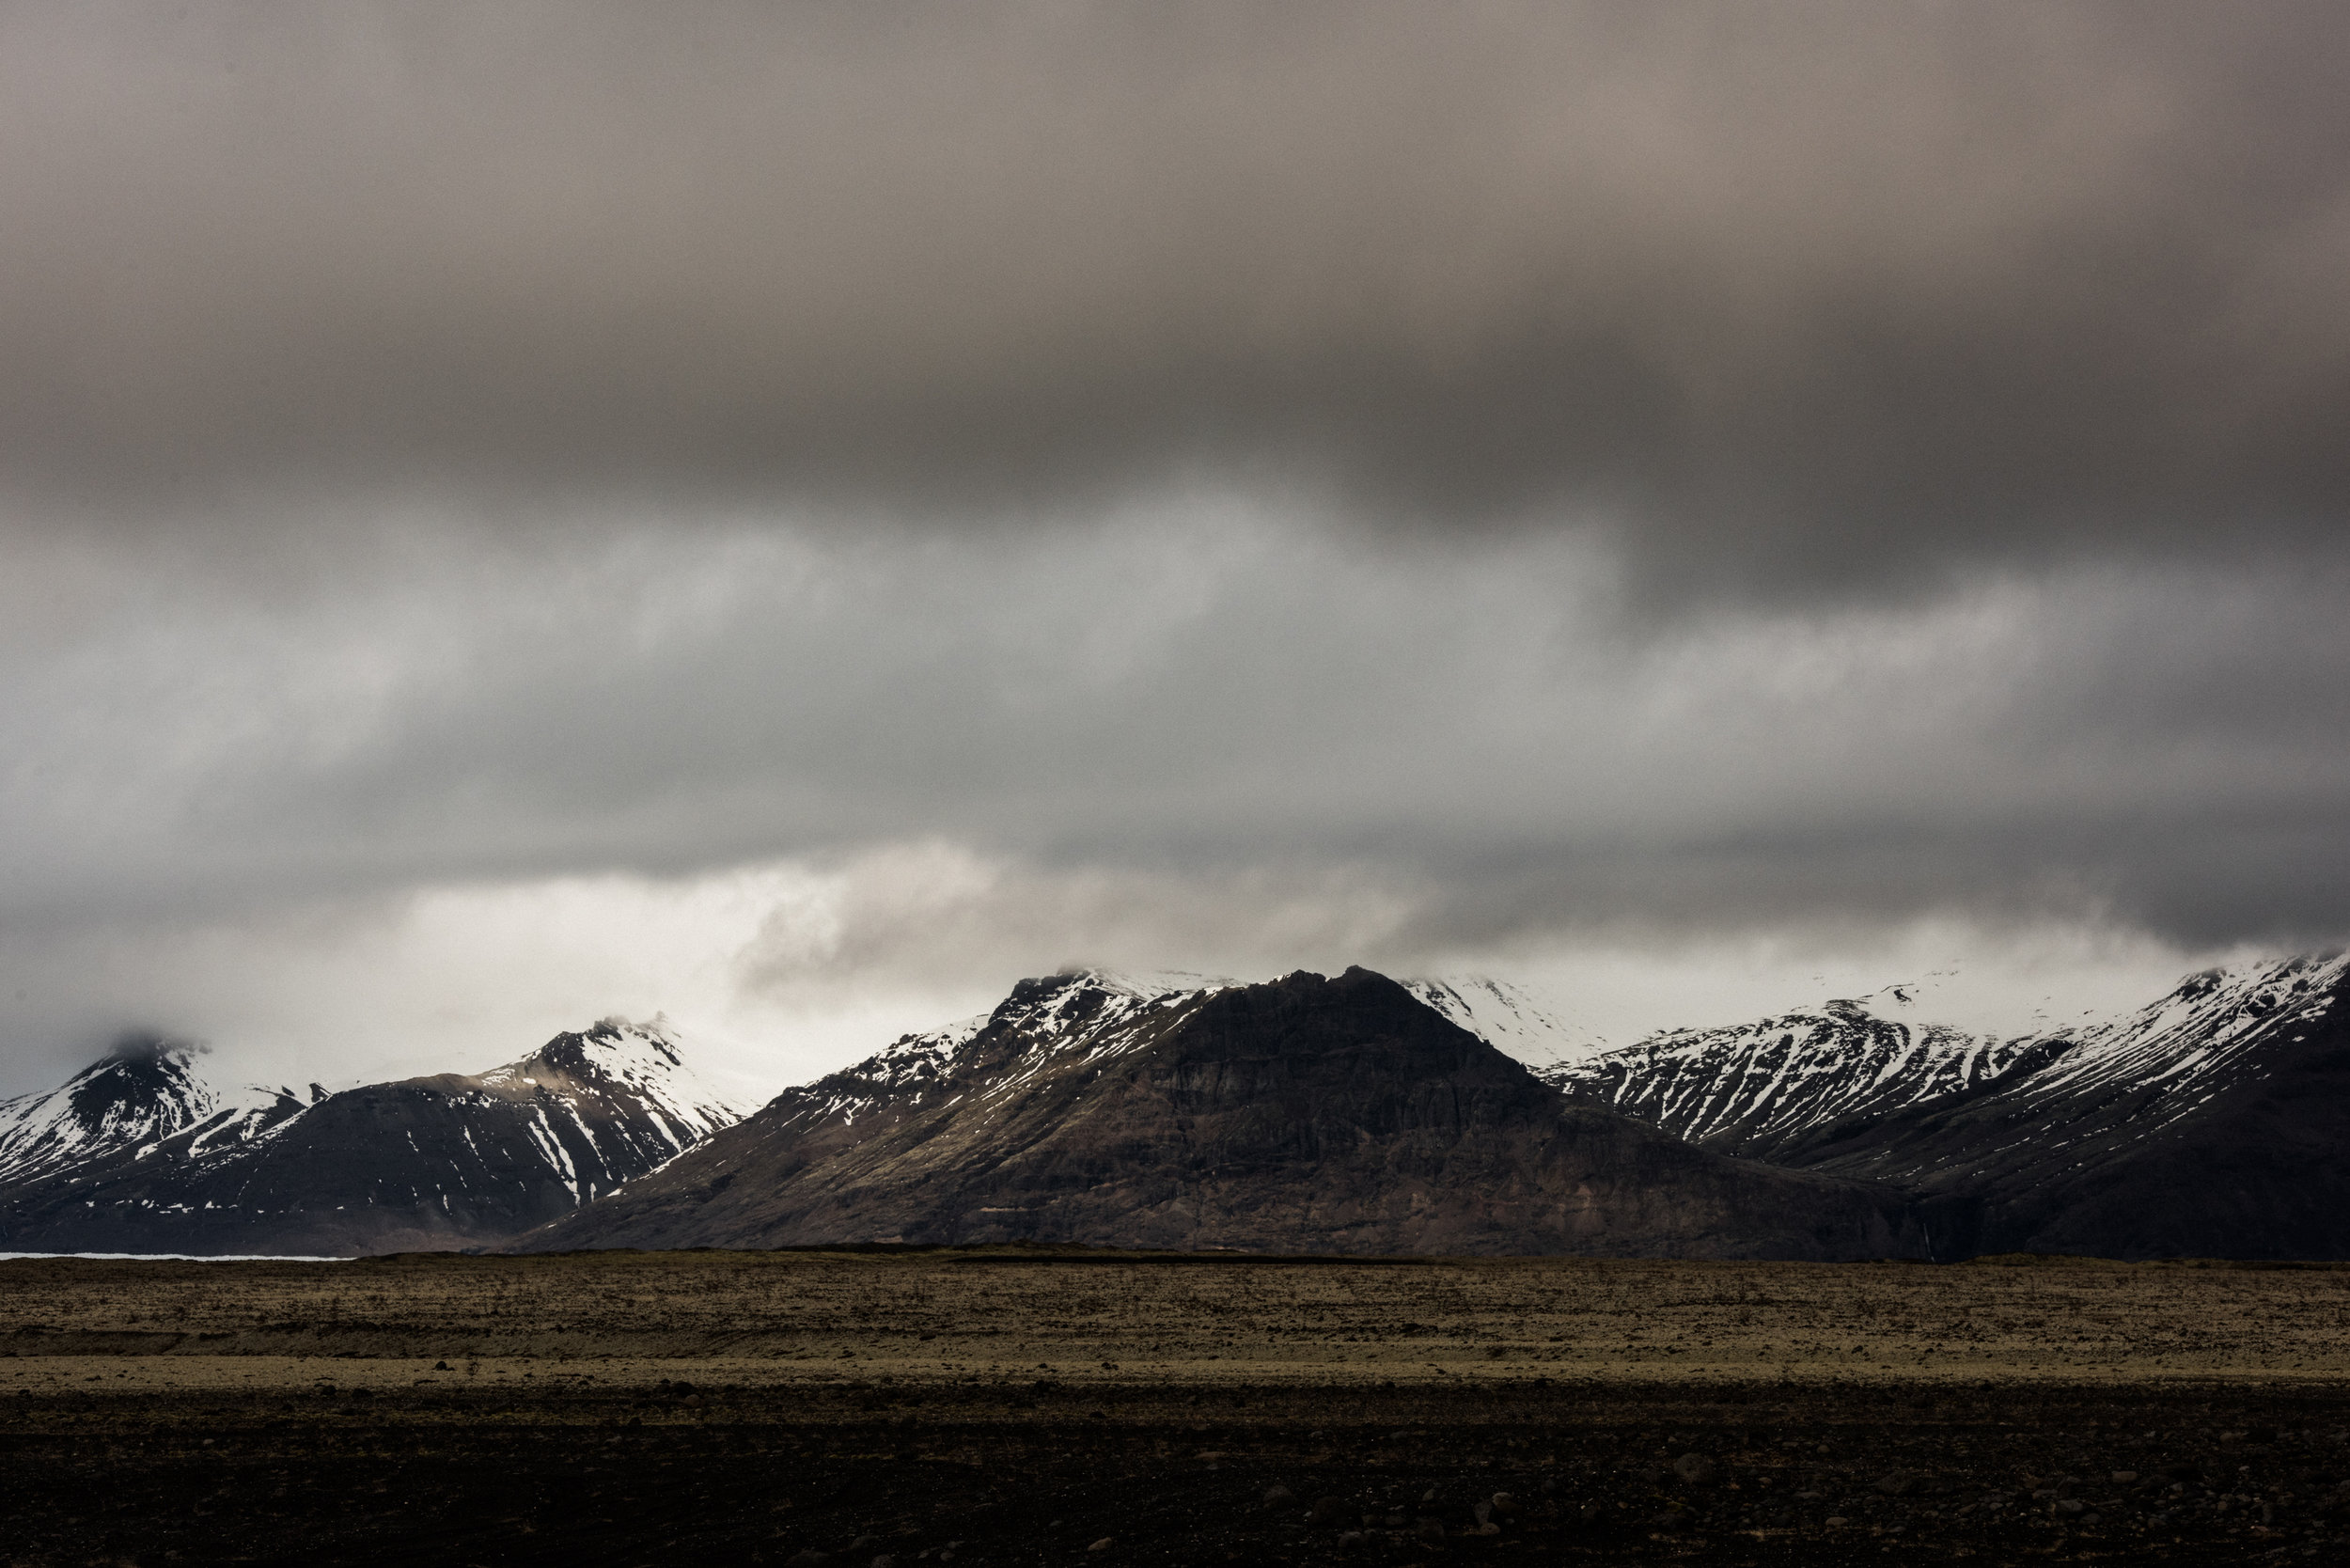 ICELAND_WOMAN_PHOTOGRAPHER_TARASHUPE_OUTDOOR_PHOTOGRAPHY_062.jpg